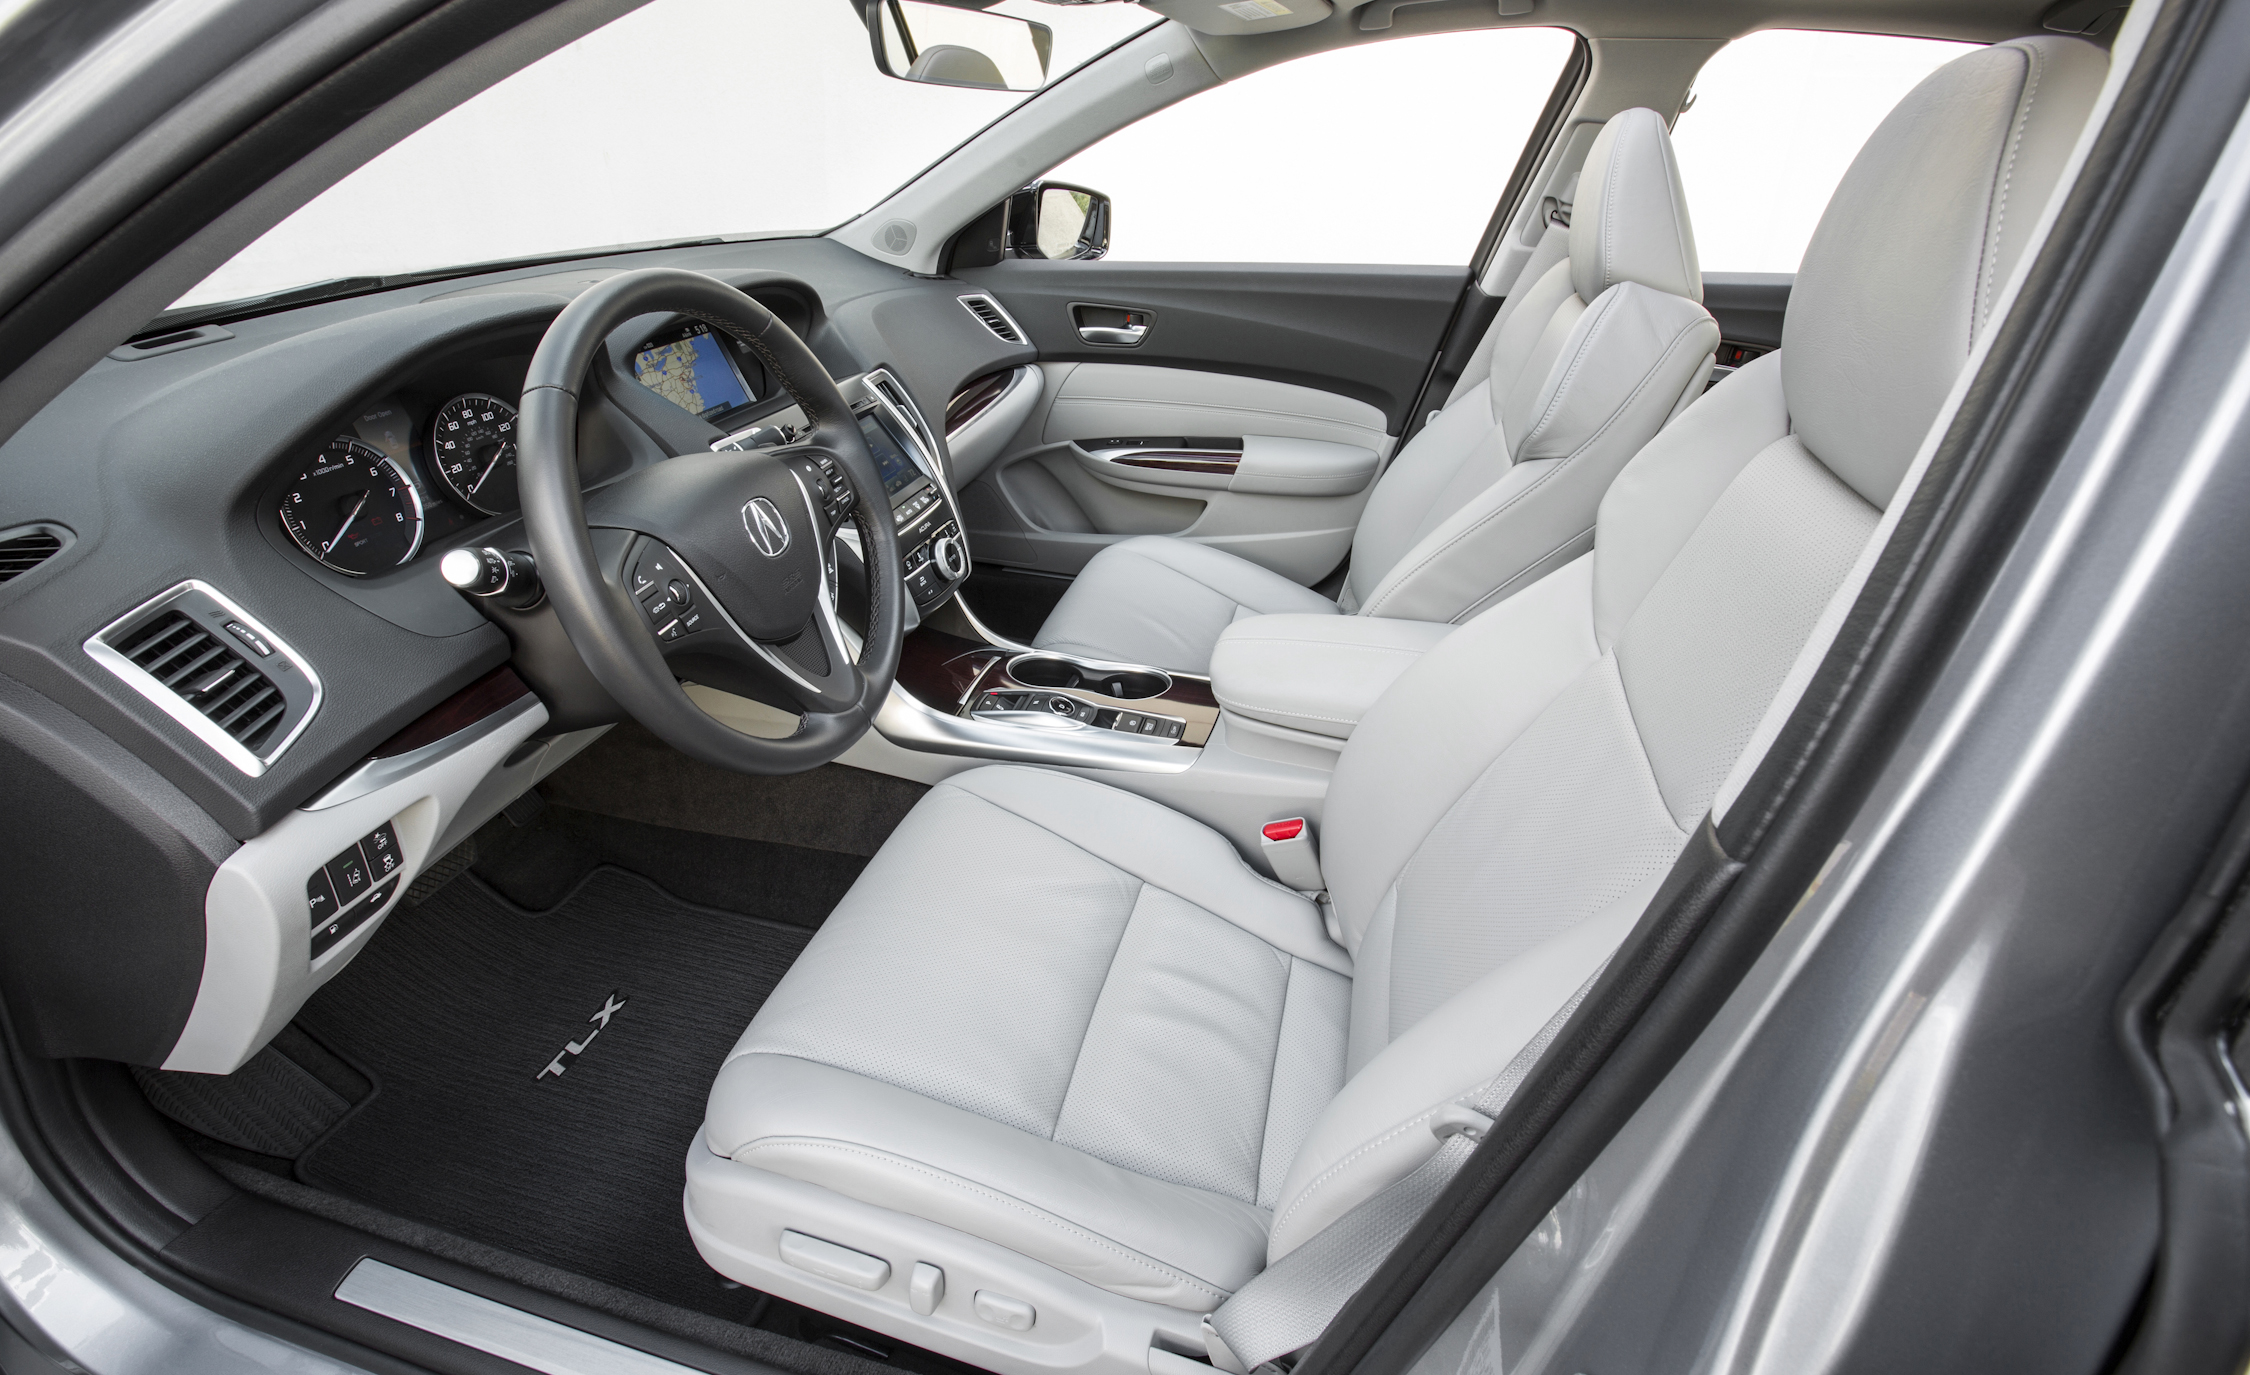 2015 Acura TLX 3.5L SH-AWD Interior Front Seats